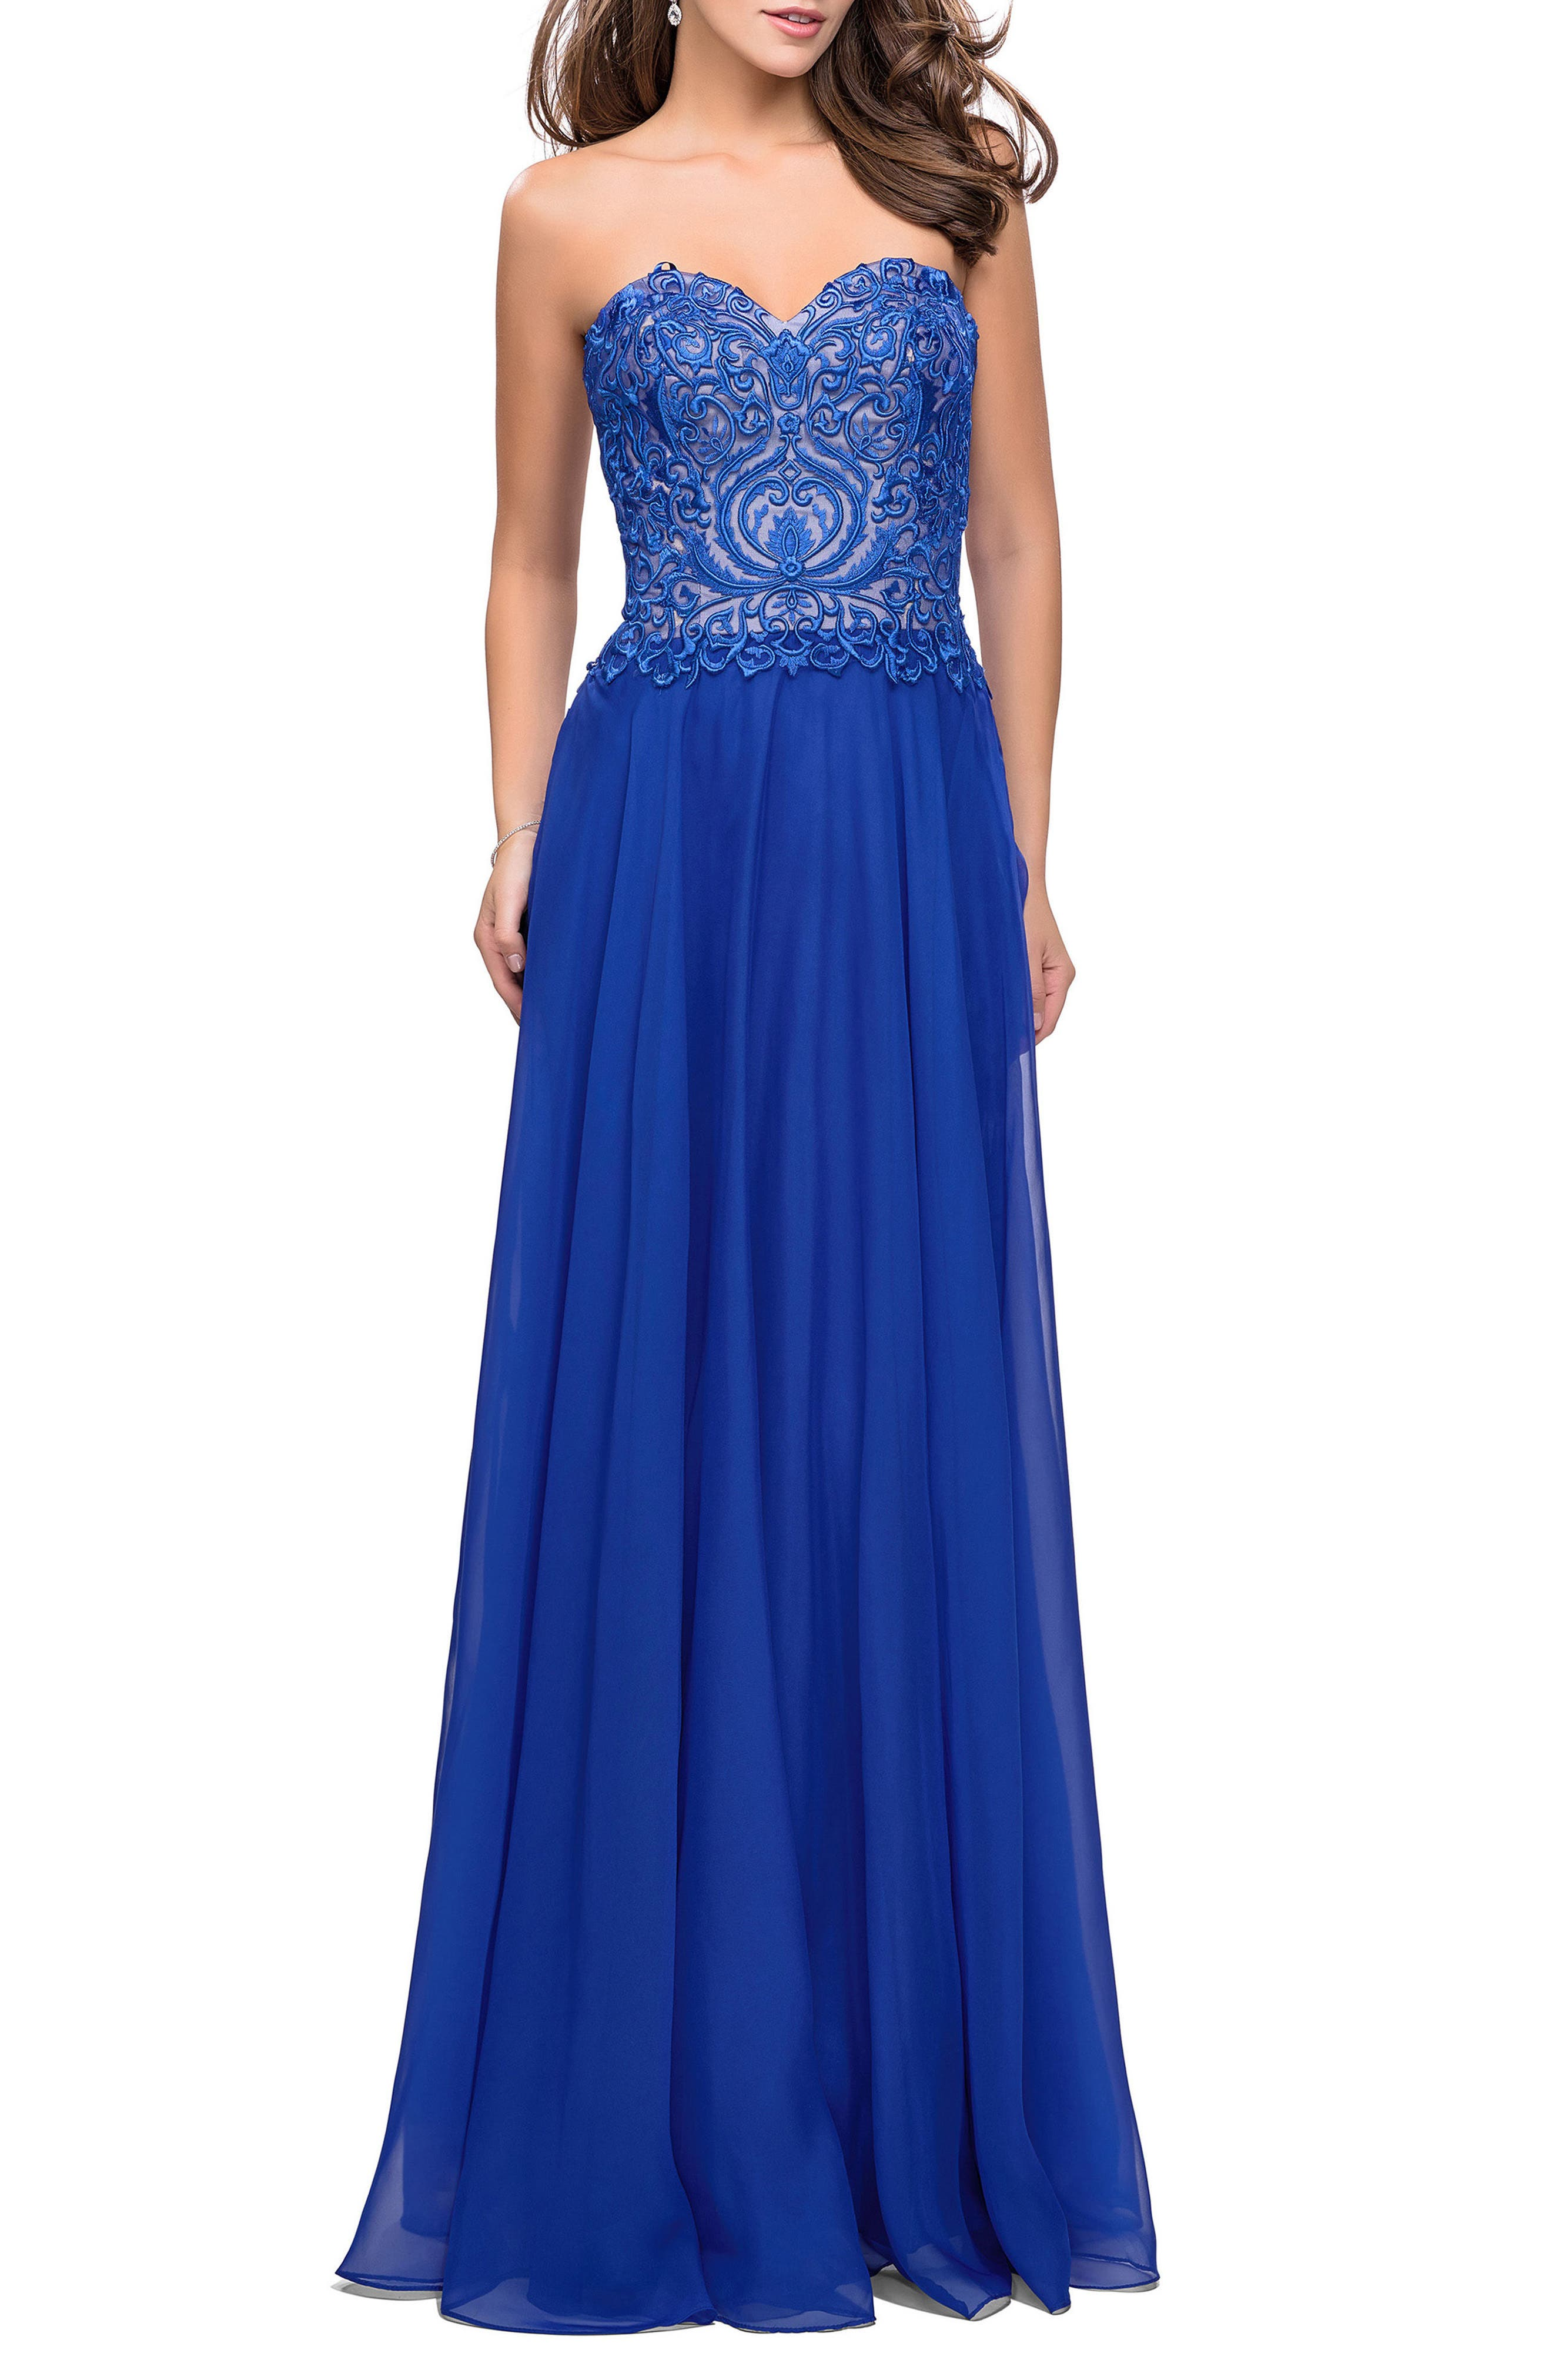 Strapless Chiffon Gown,                             Main thumbnail 1, color,                             402